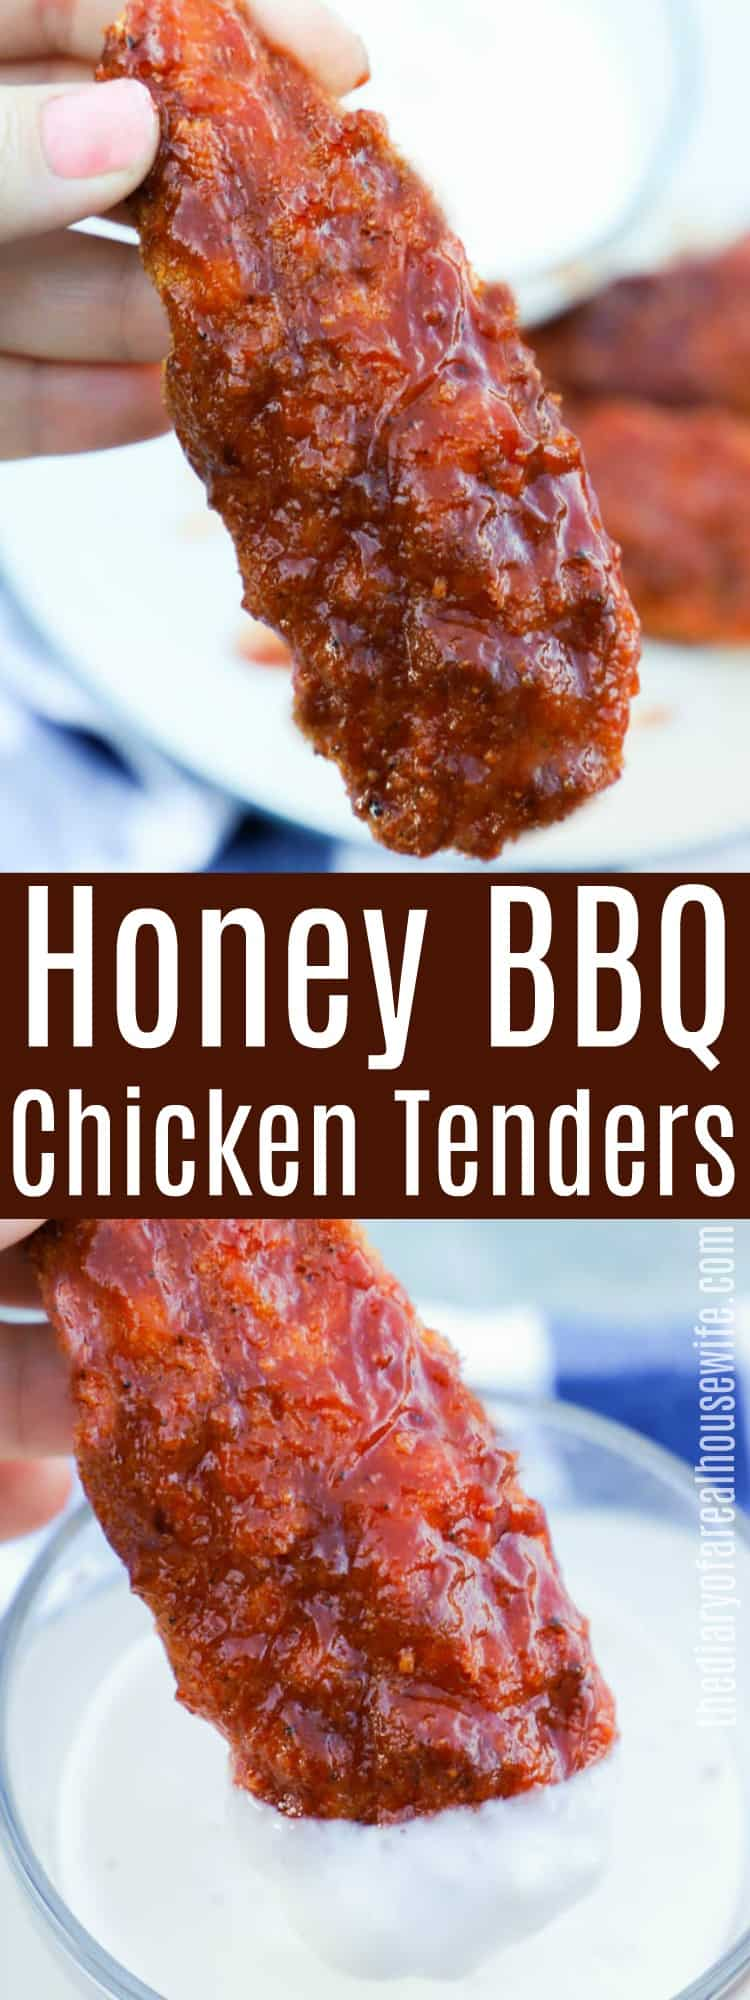 Honey BBQ Chicken Tenders